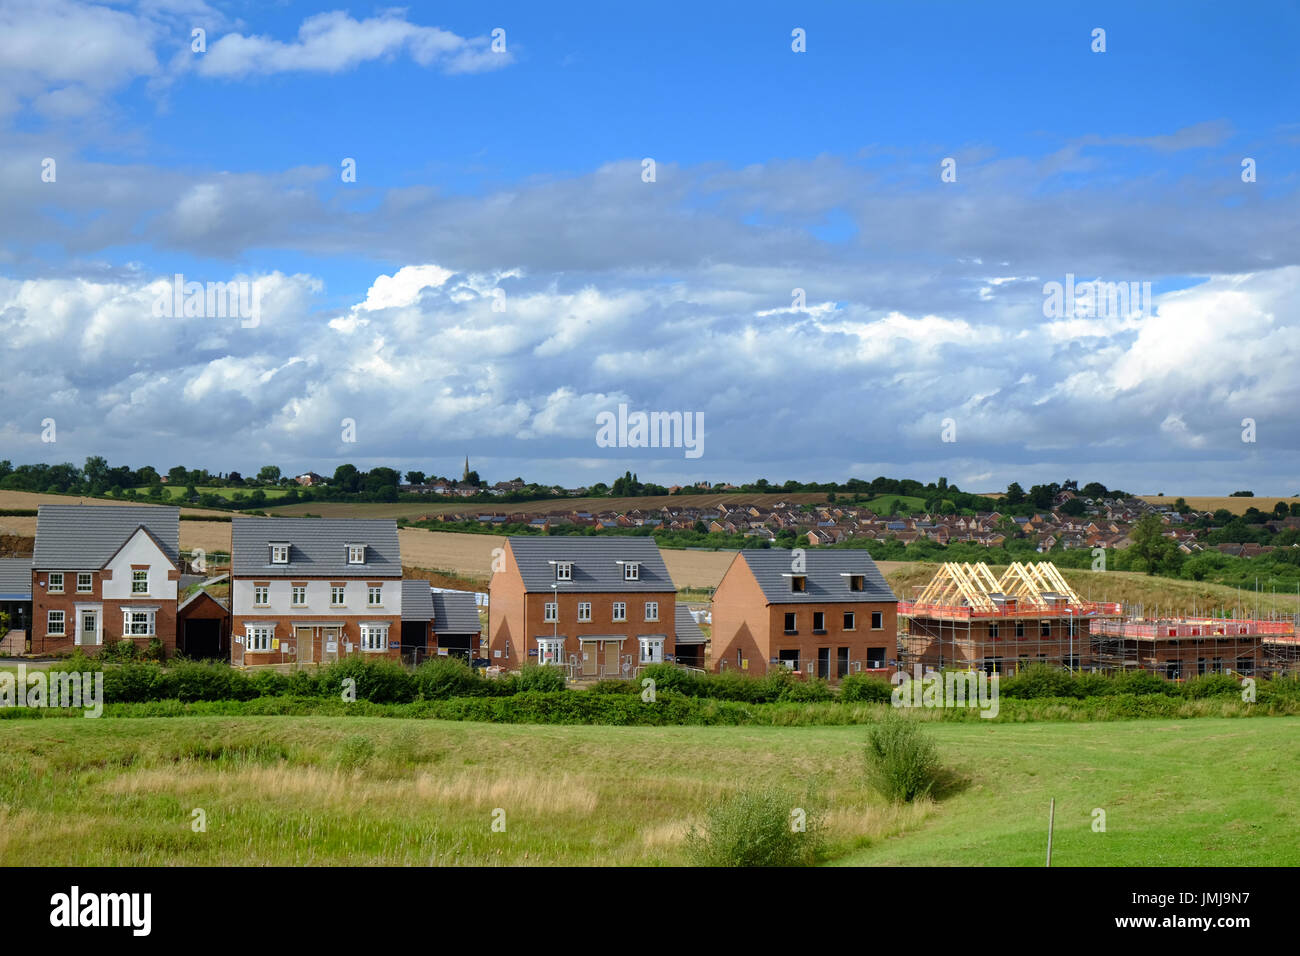 New housing development in Grantham, Lincolnshire, England, UK - Stock Image